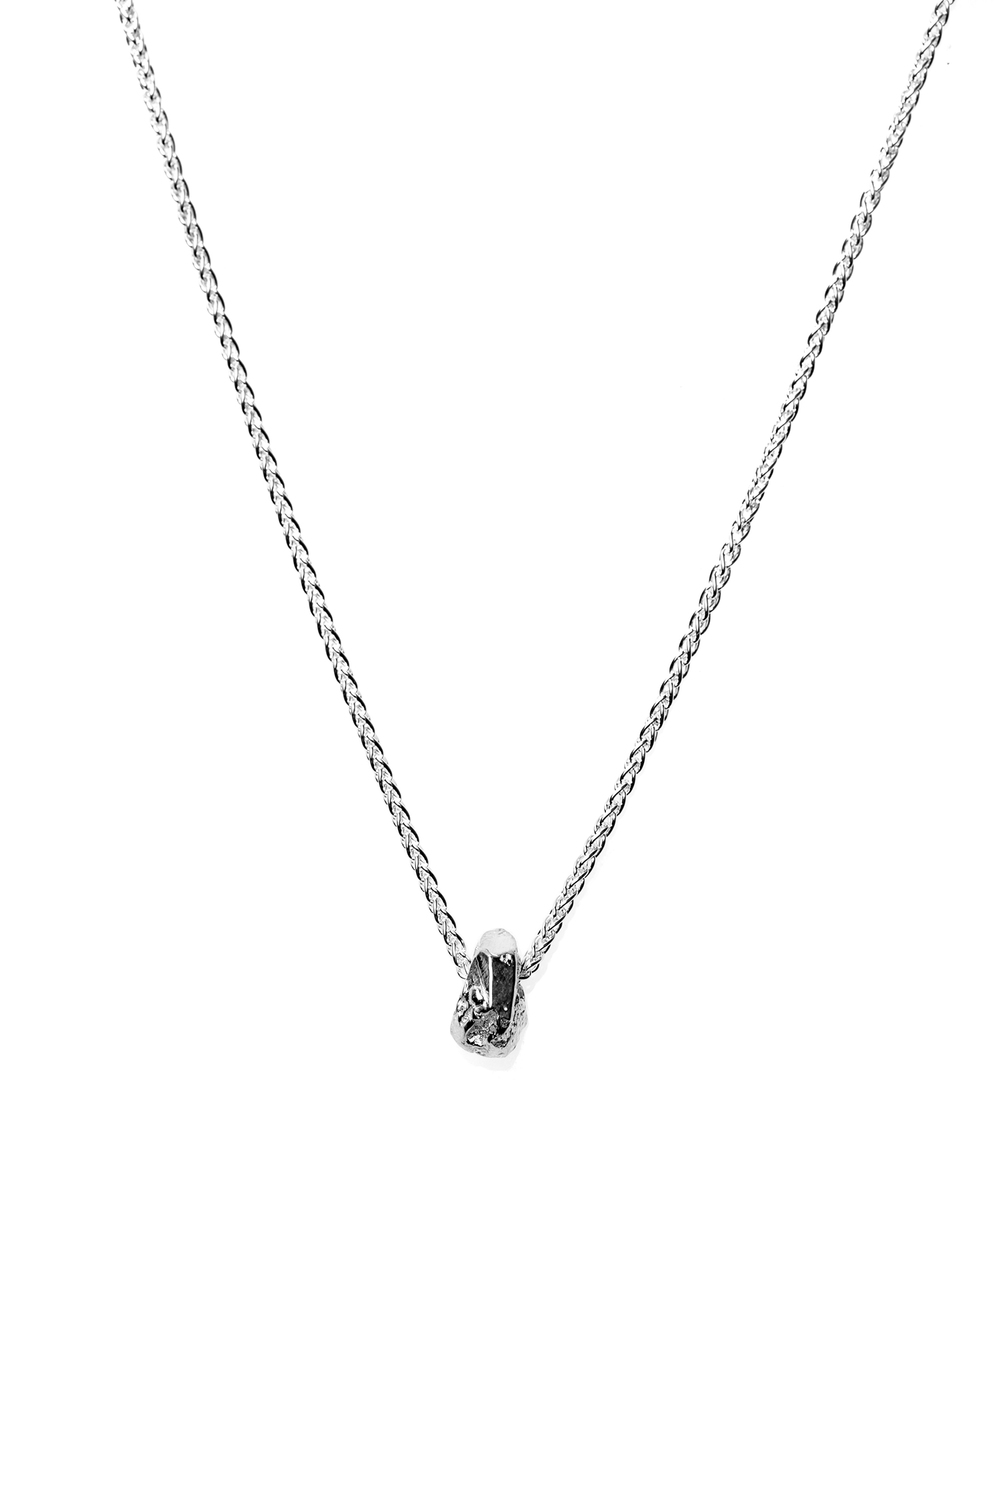 Petit Glacier Necklace